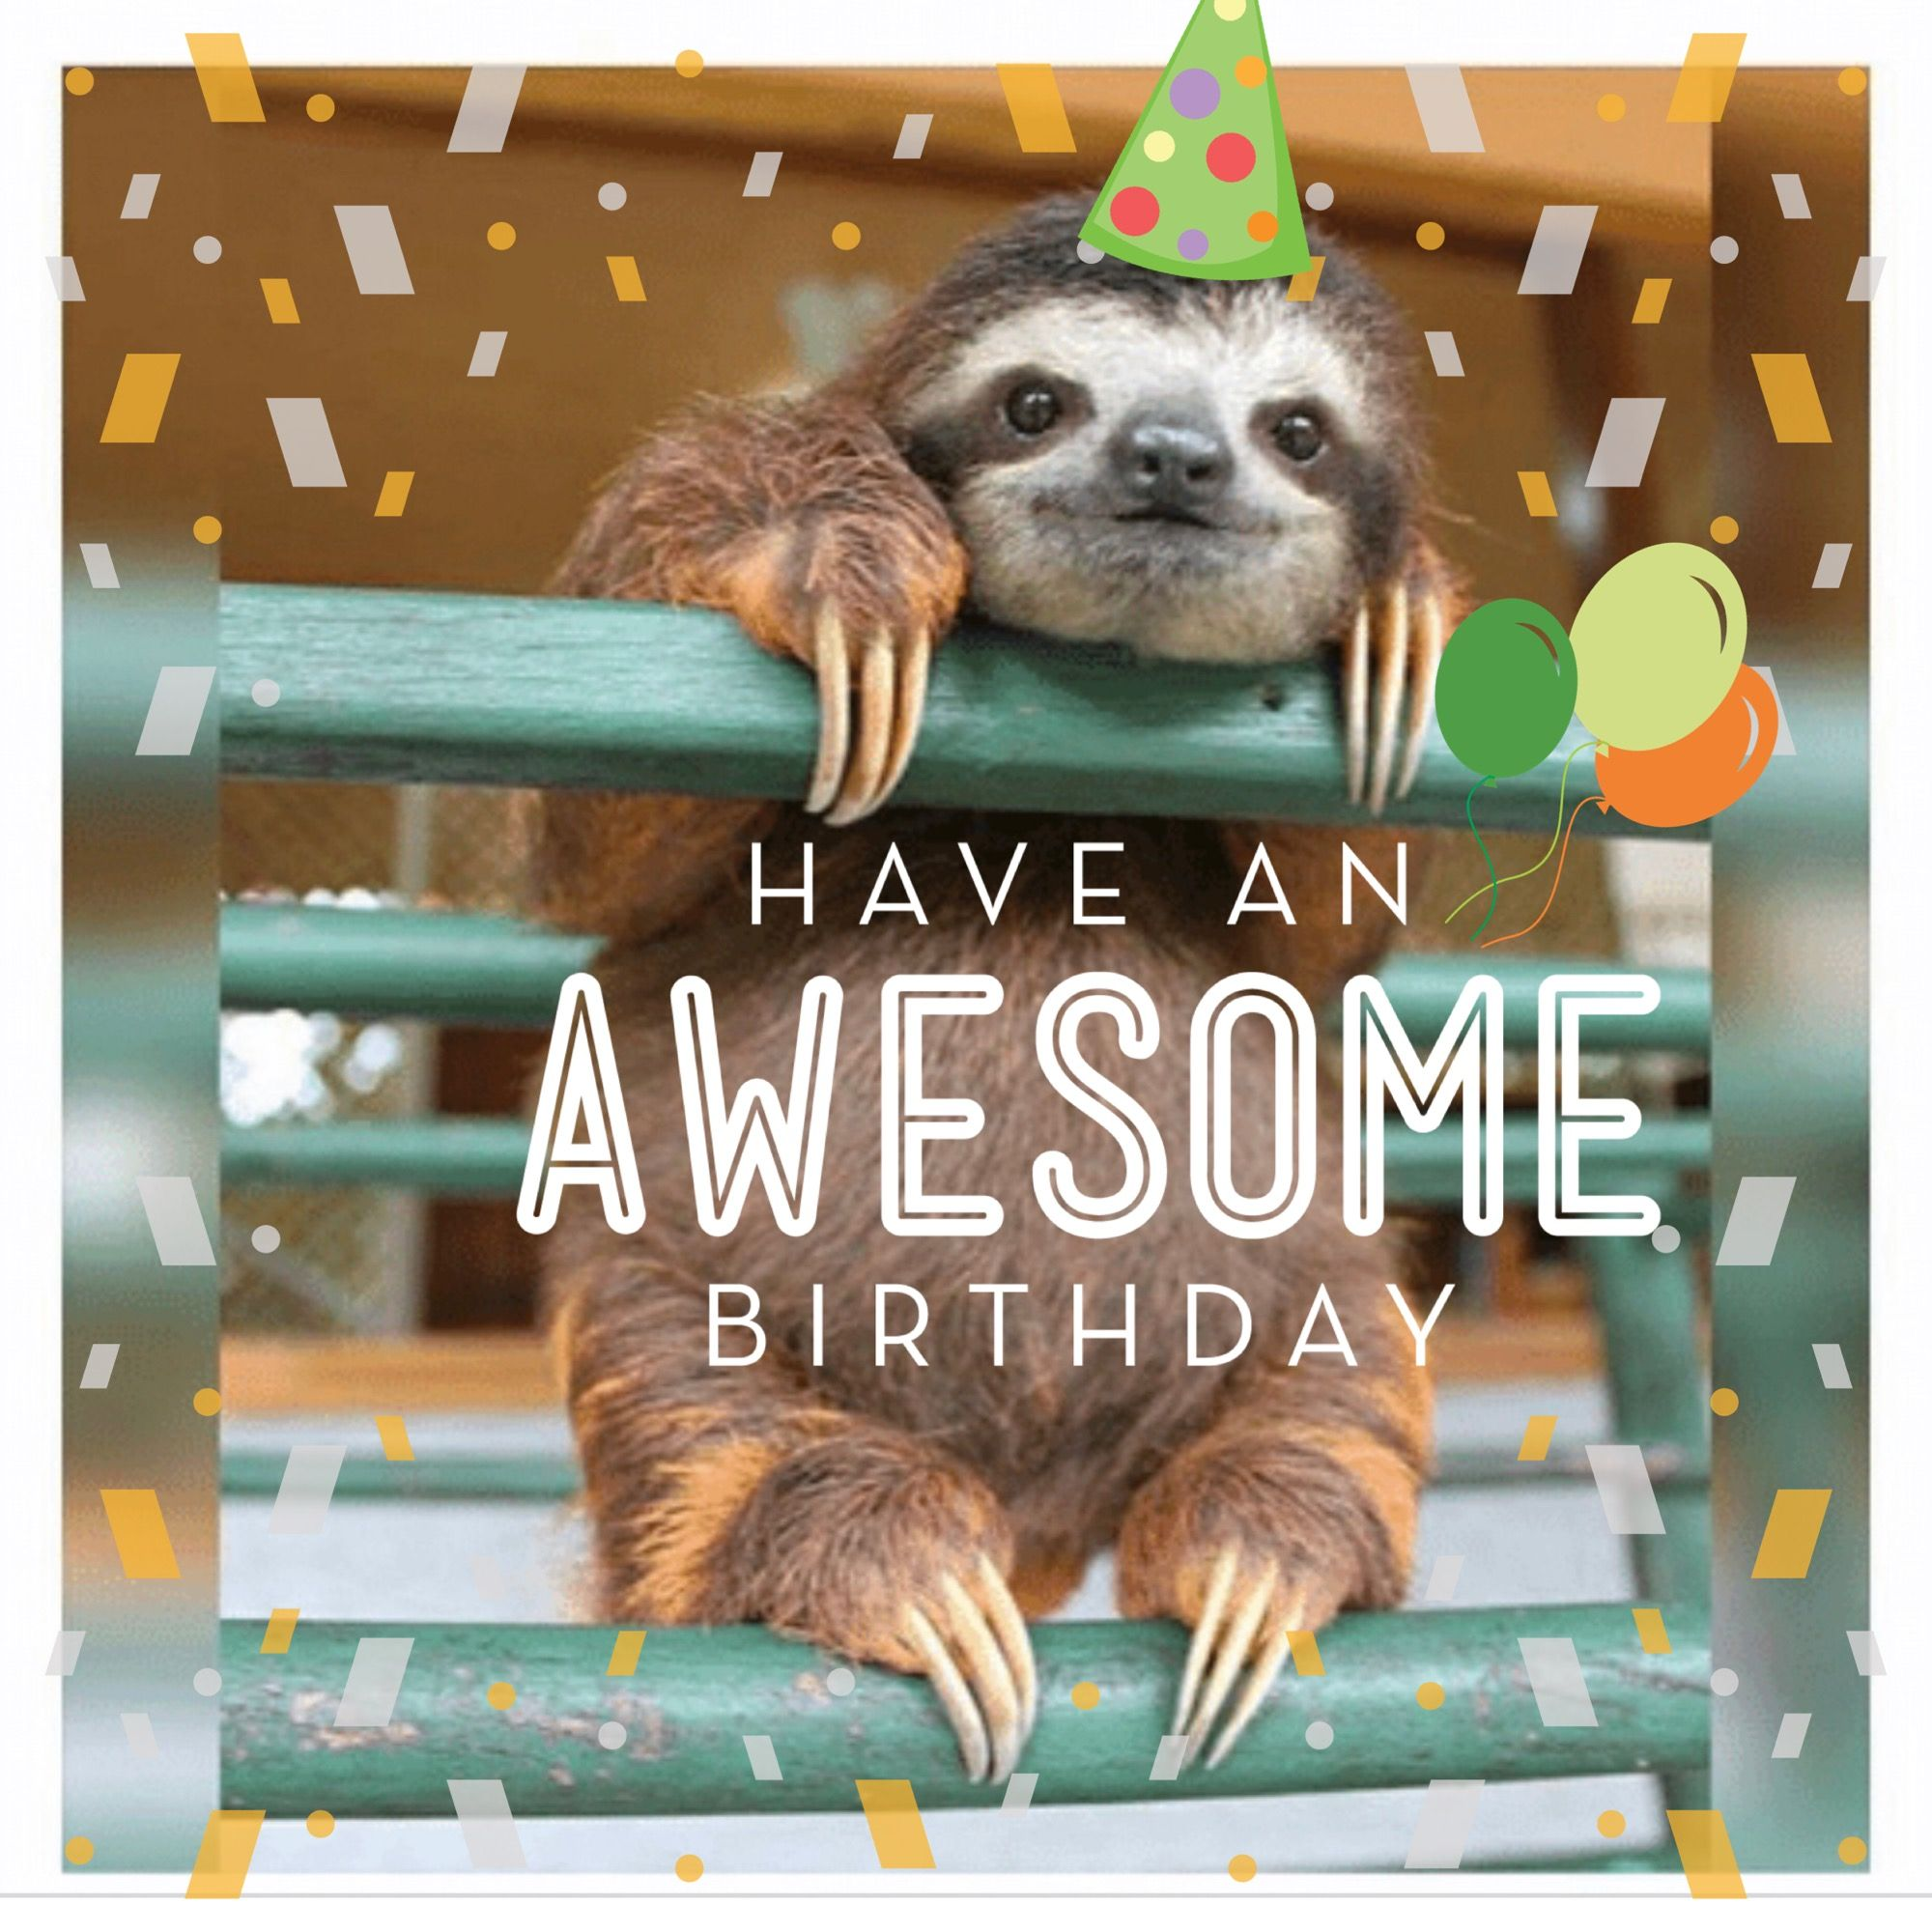 Pin by Michelle Cross on Celebration Messages Sloth